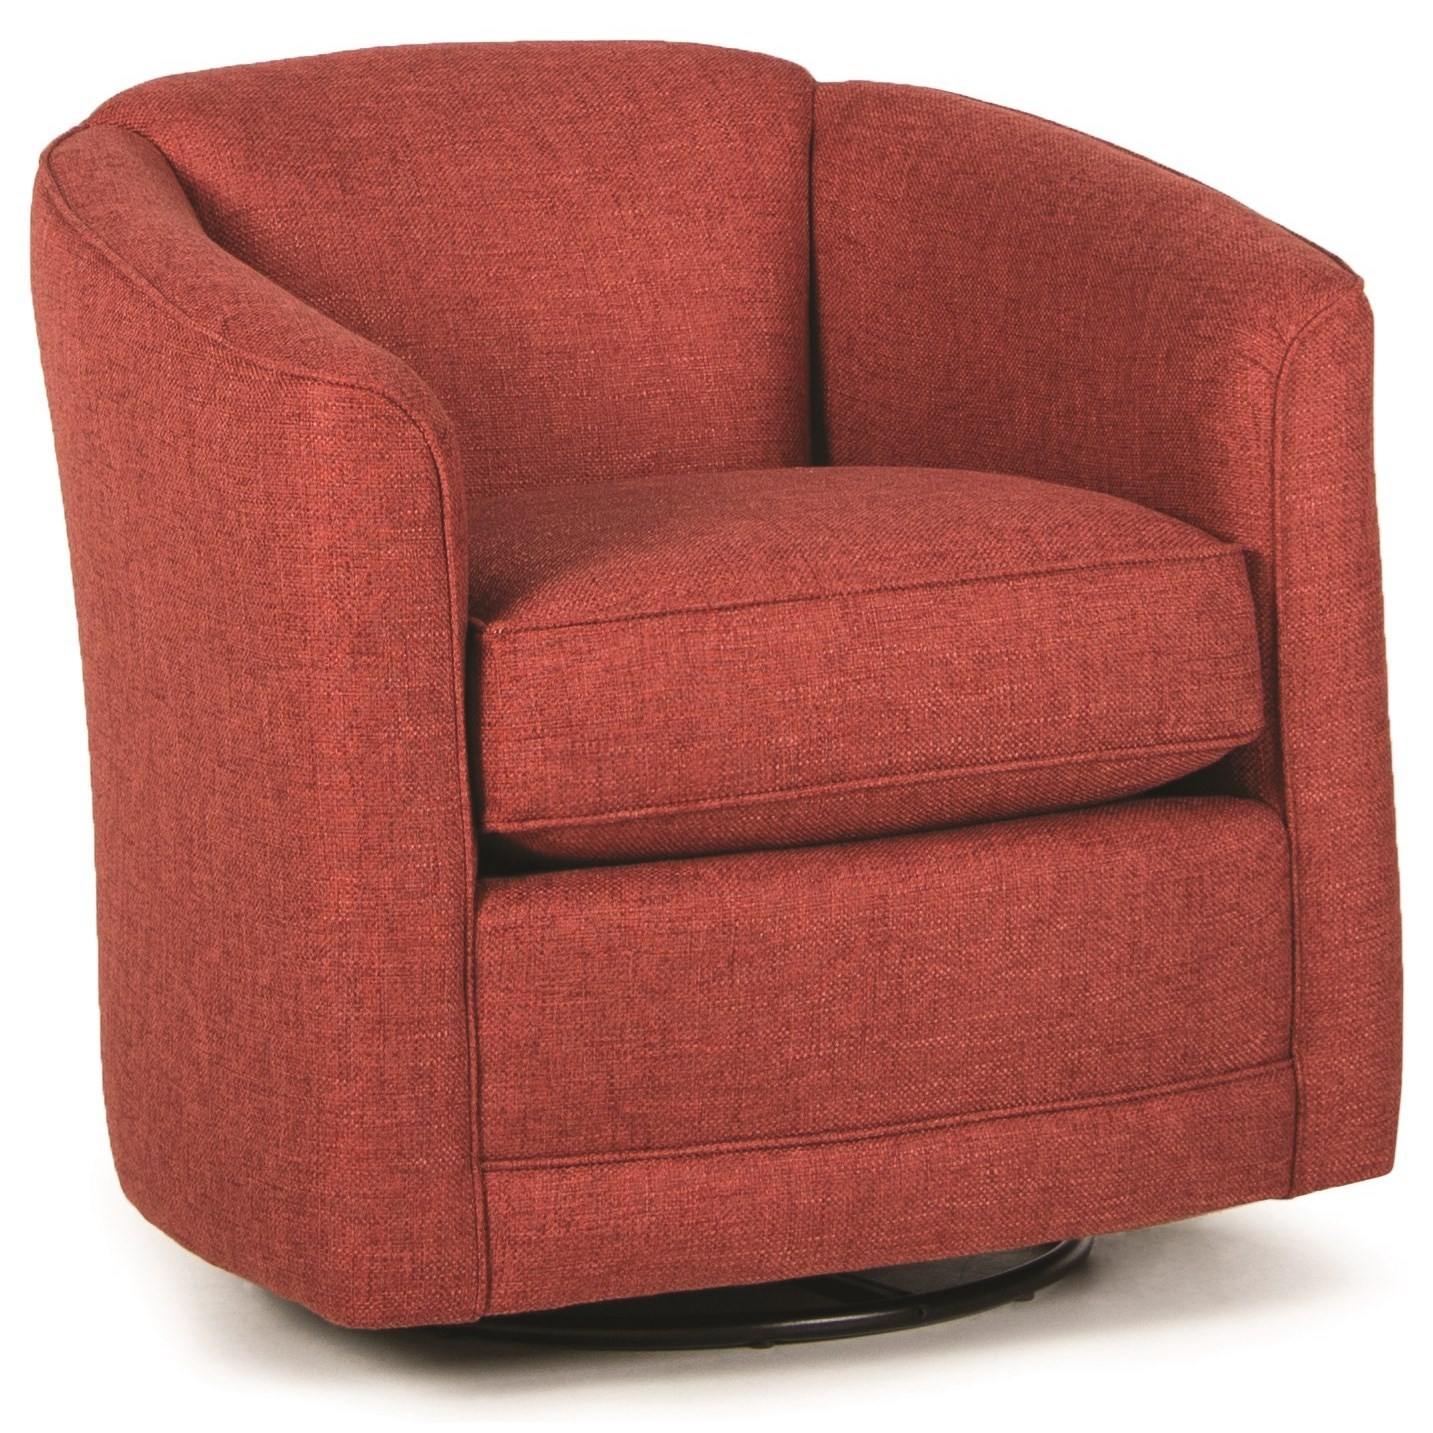 506 Swivel Glider Chair by Smith Brothers at Pilgrim Furniture City